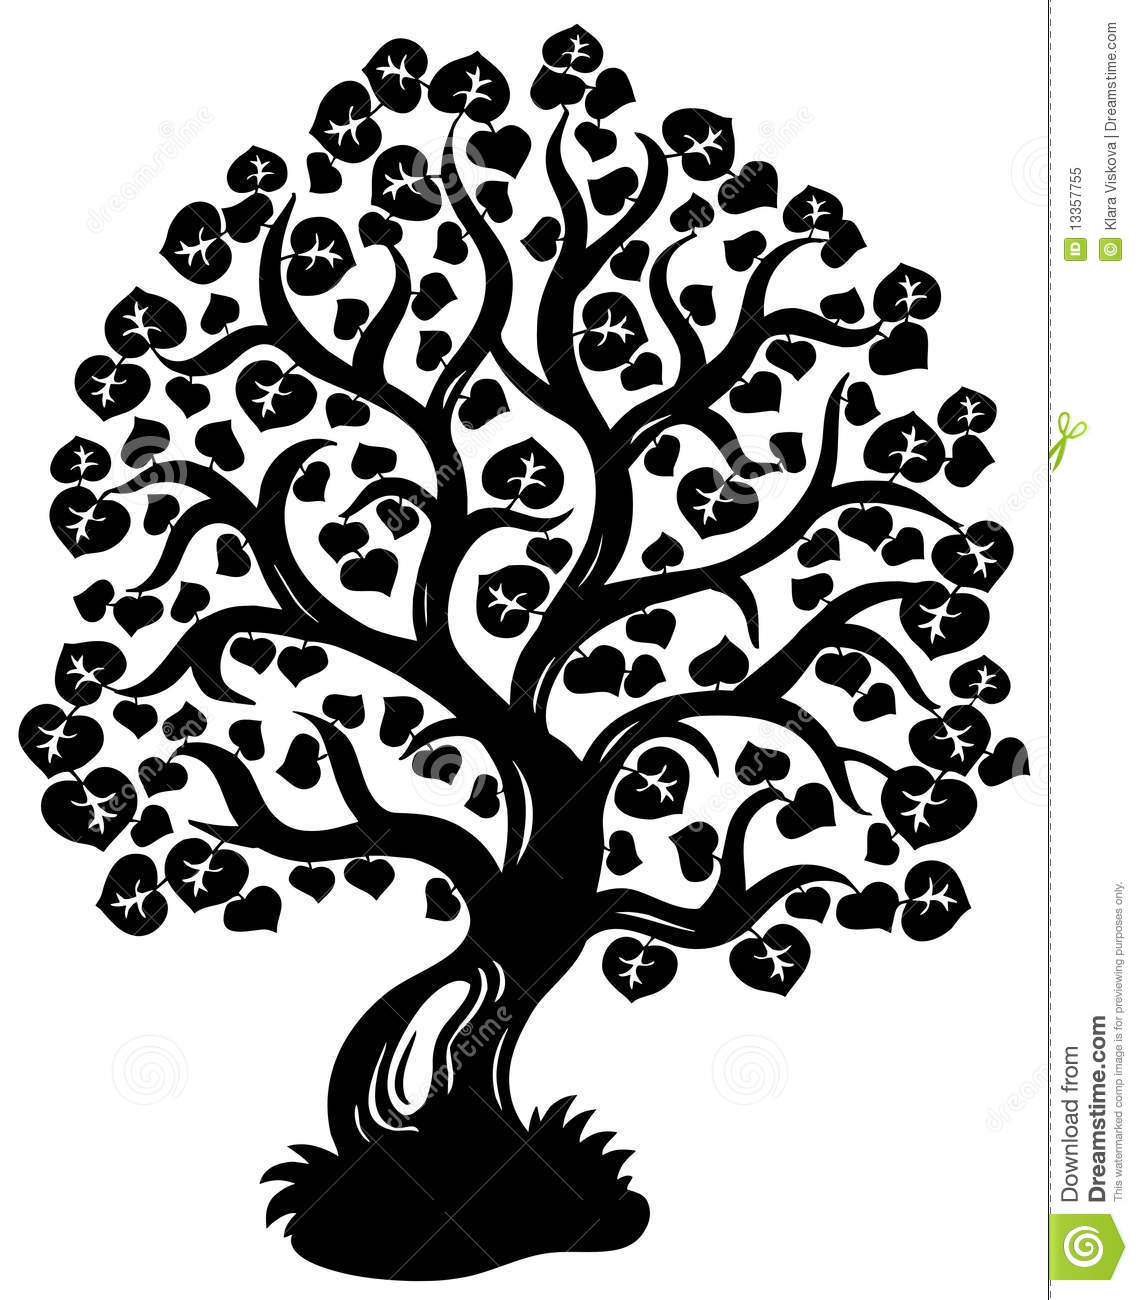 12 Family Tree Silhouette Vector Images  Oak